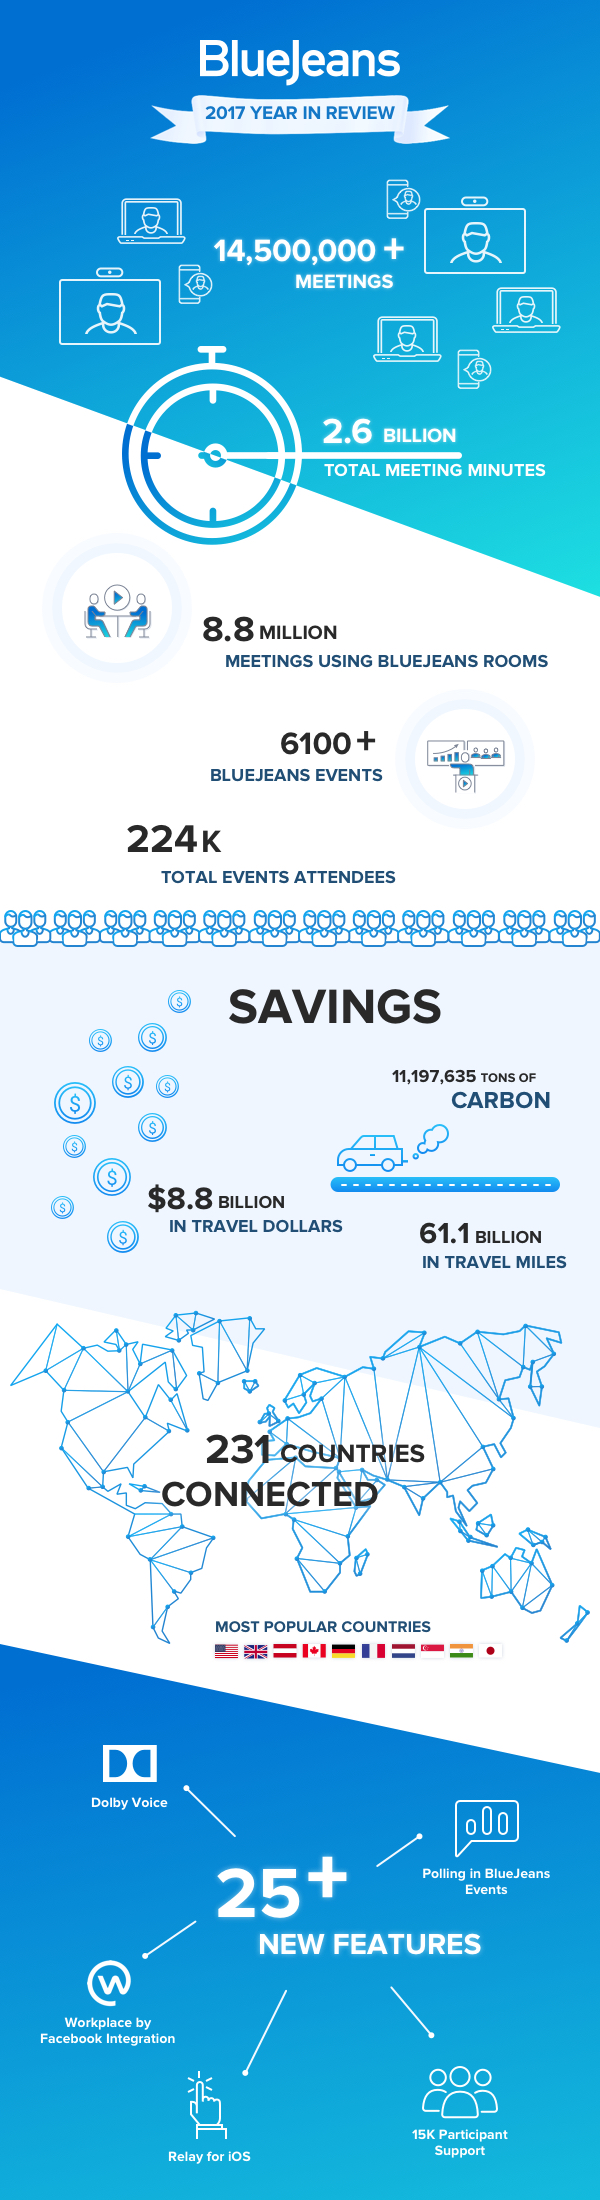 BlueJeans Year in Review Infographic